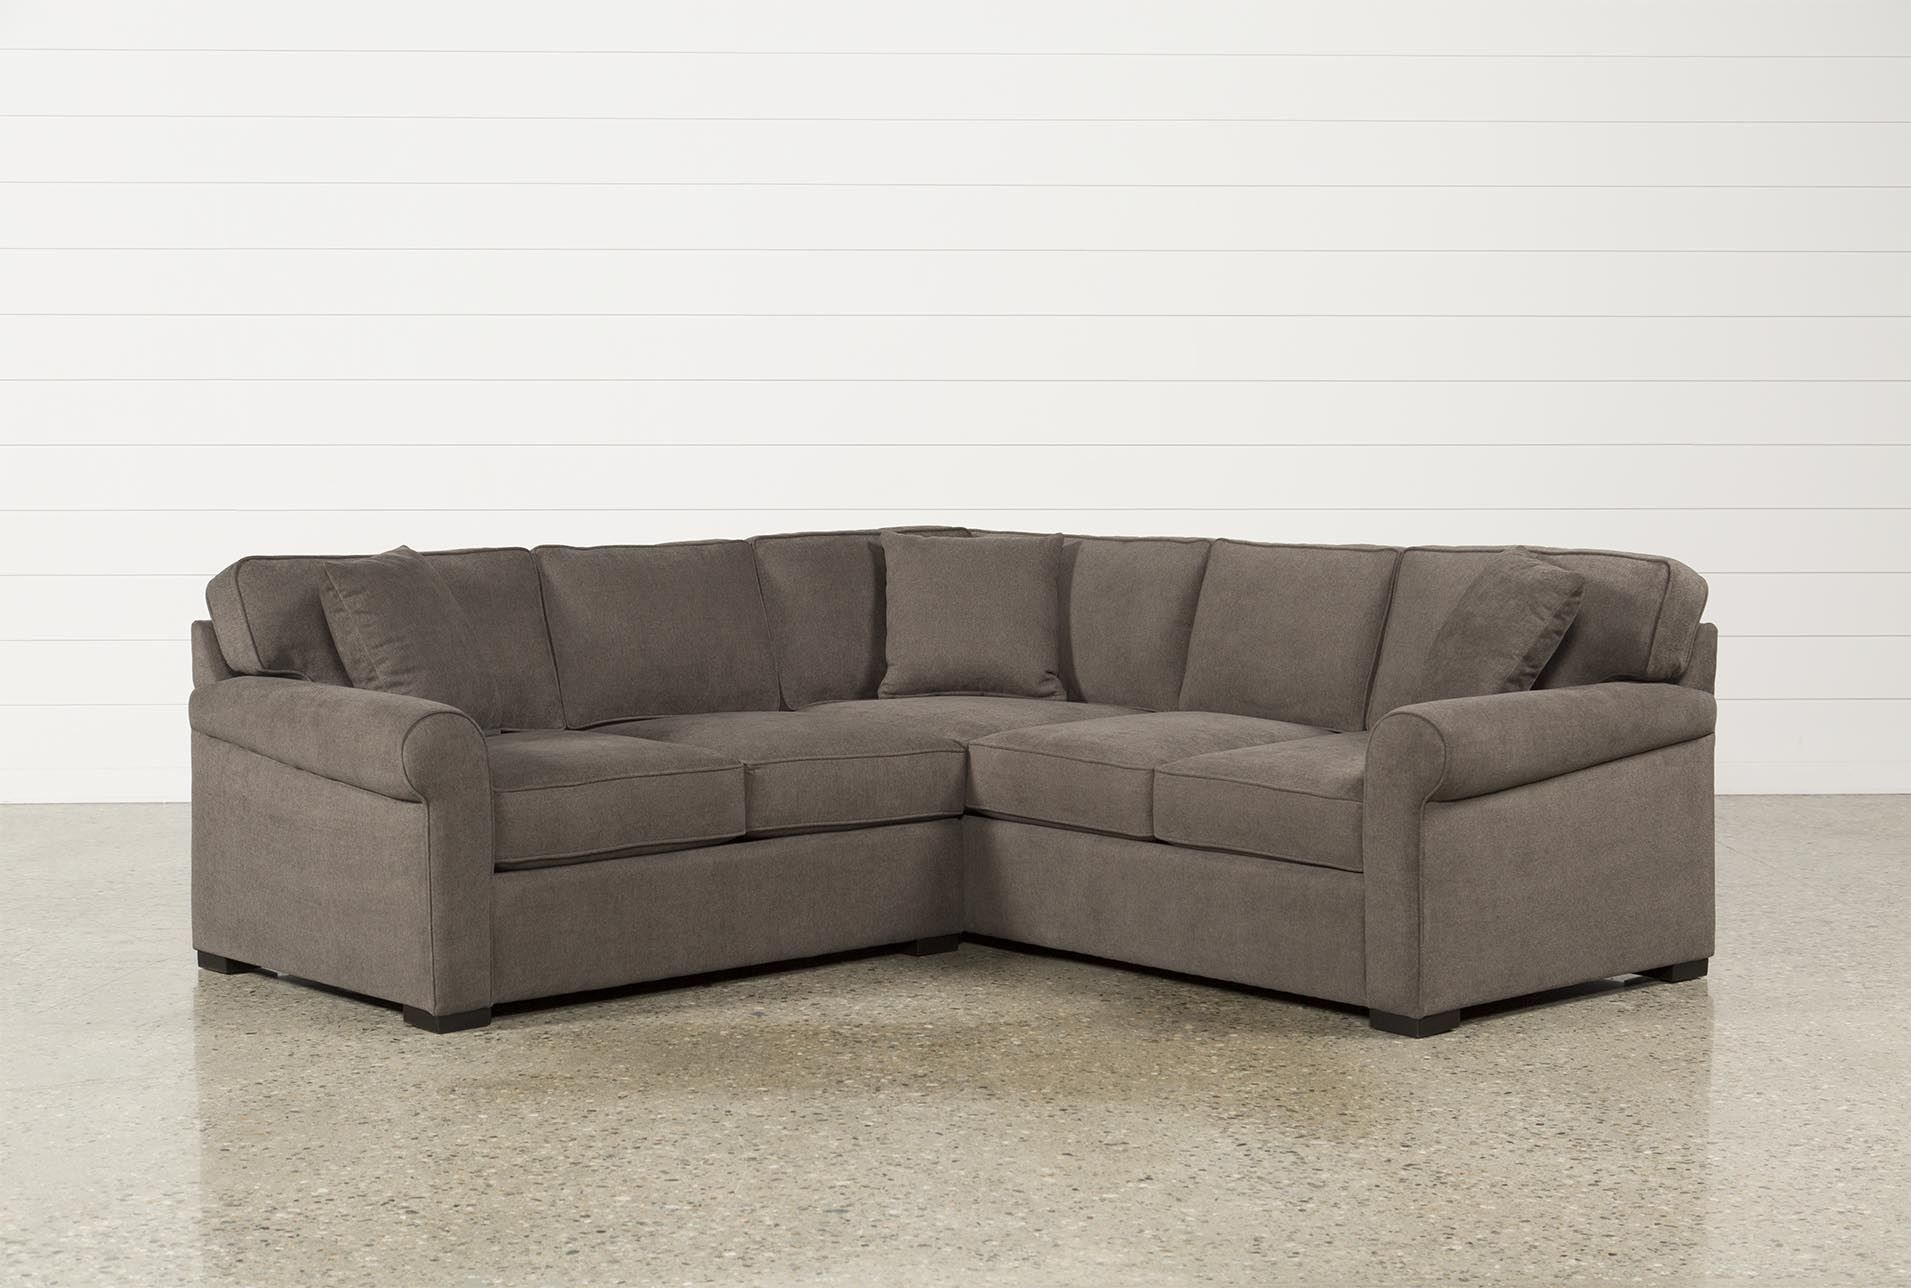 Elm Grande 2 Piece Sectional, Grey, Sofas | Pinterest | Living Pertaining To Arrowmask 2 Piece Sectionals With Sleeper & Left Facing Chaise (Photo 21 of 30)